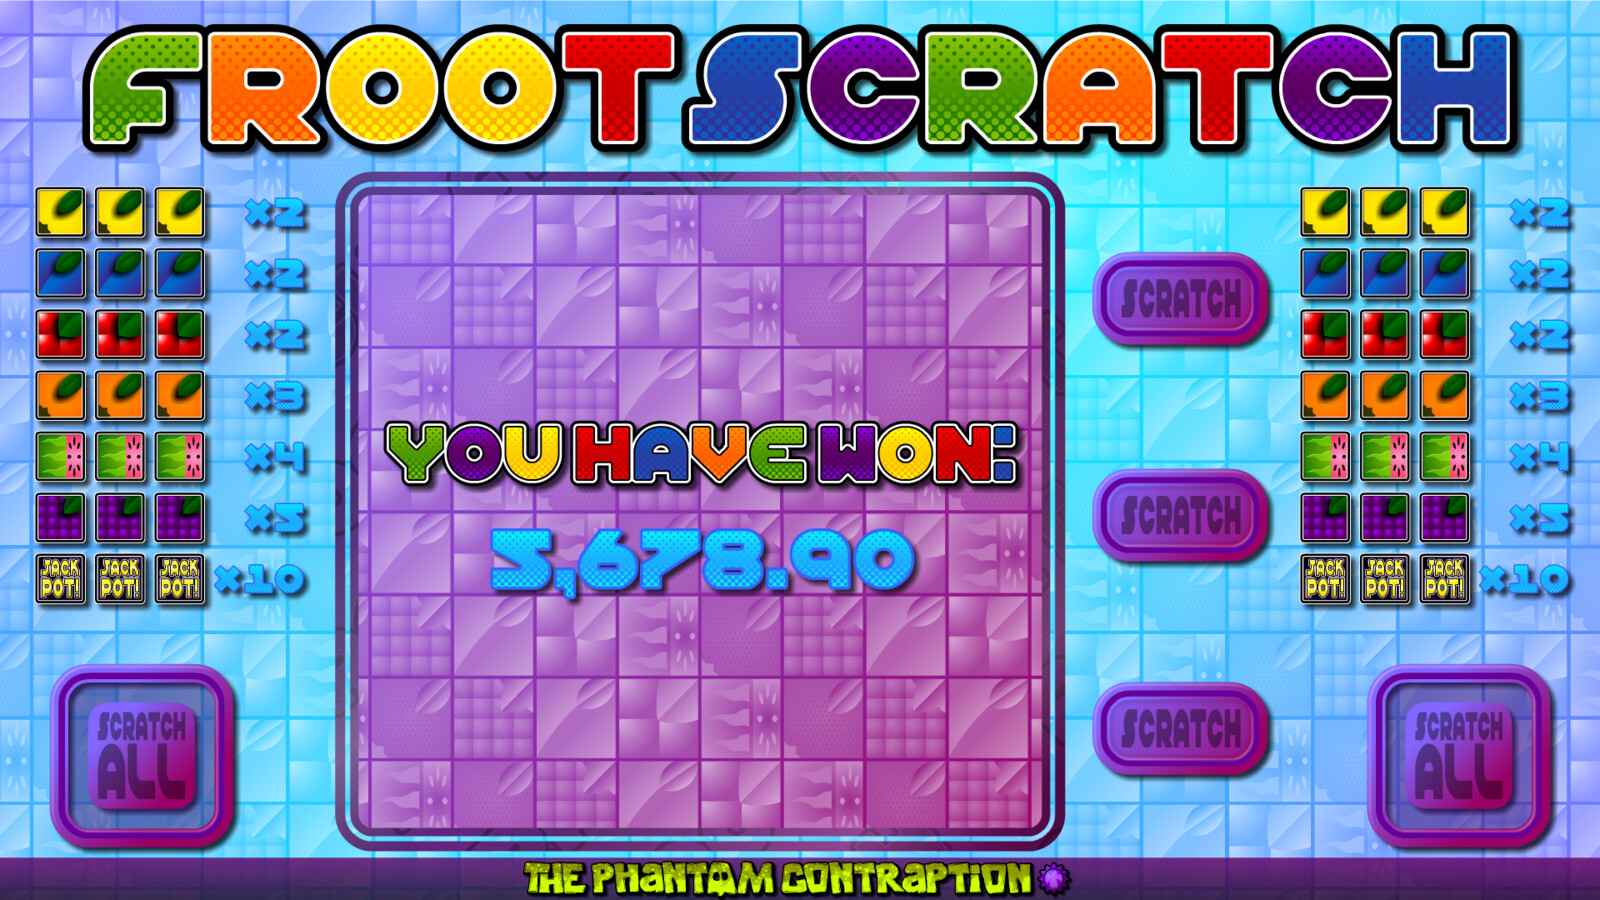 Froot Scratch Landscape Screenshot: You Have Won